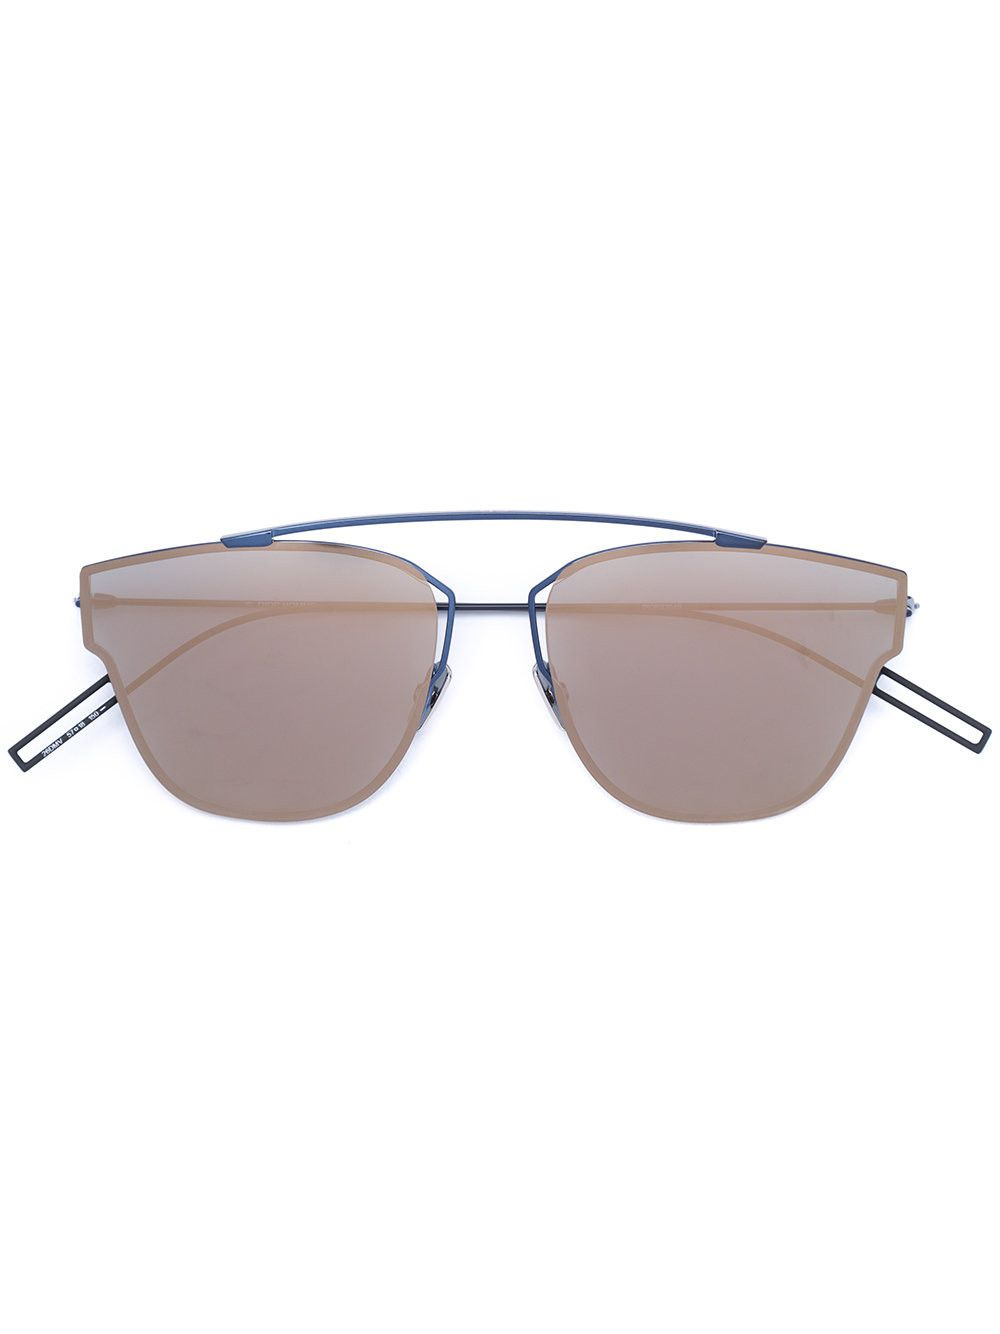 cf7e54e5be2a8 Christian Dior  204s  rimless aviator sunglasses